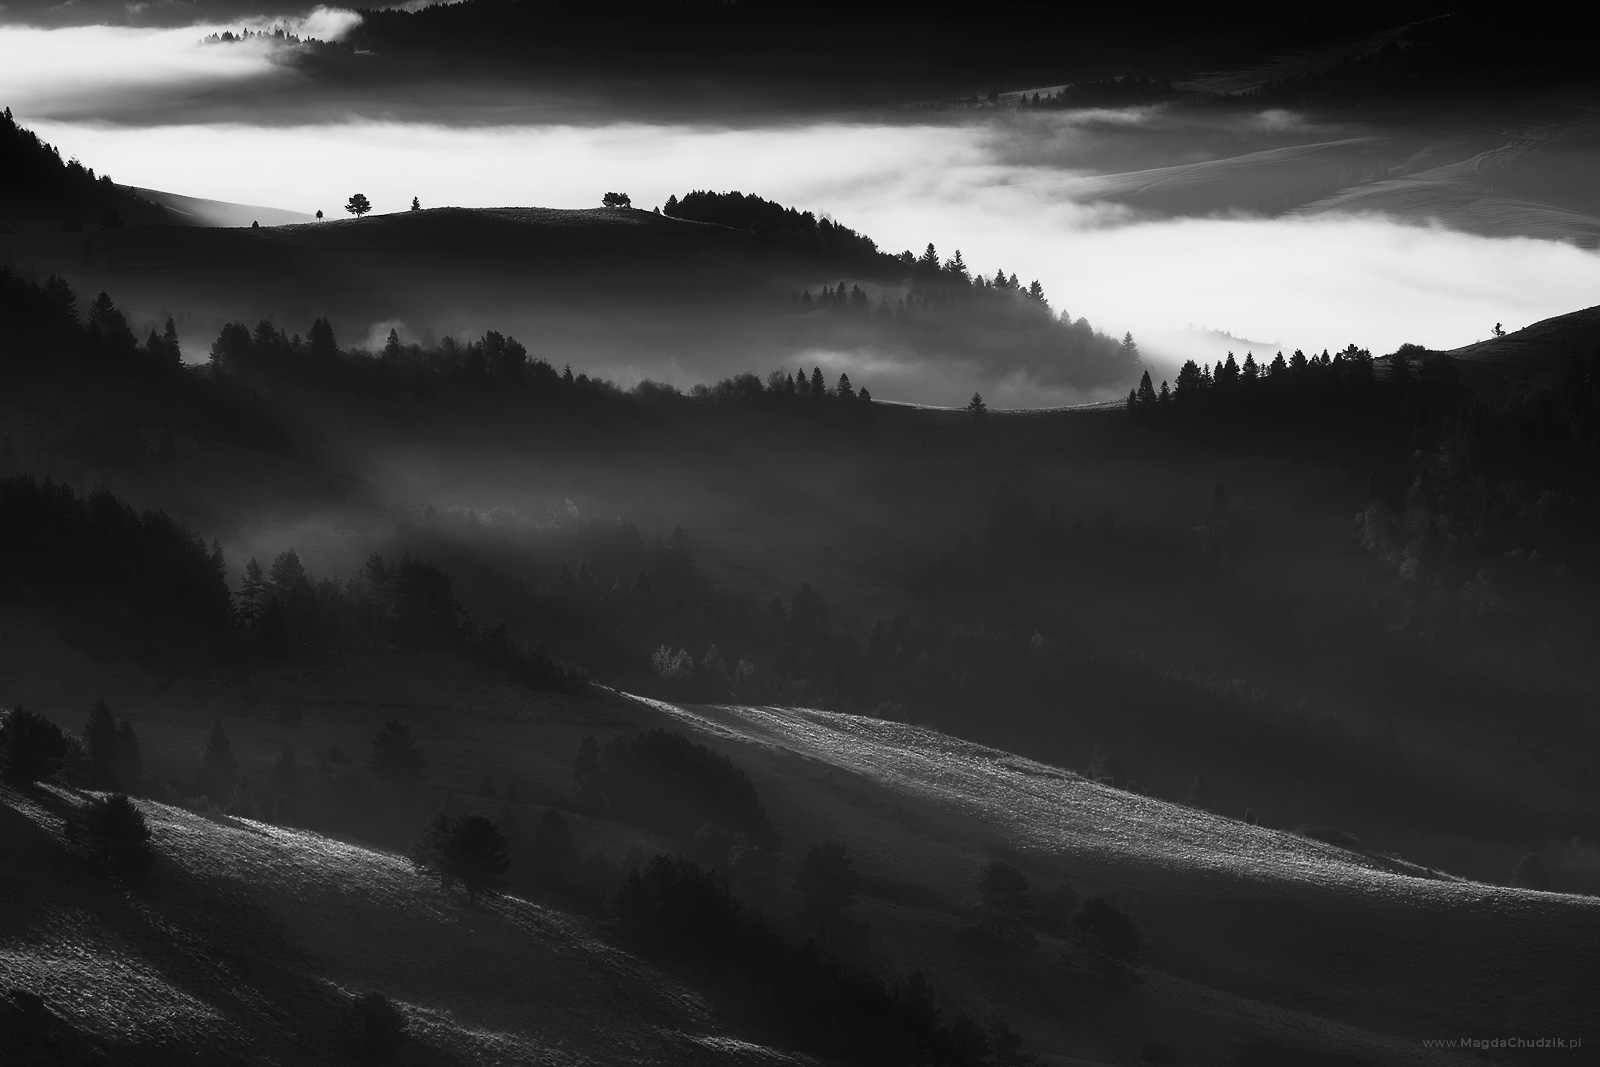 magda-chudzik-black-and-white-landscape-photography-45